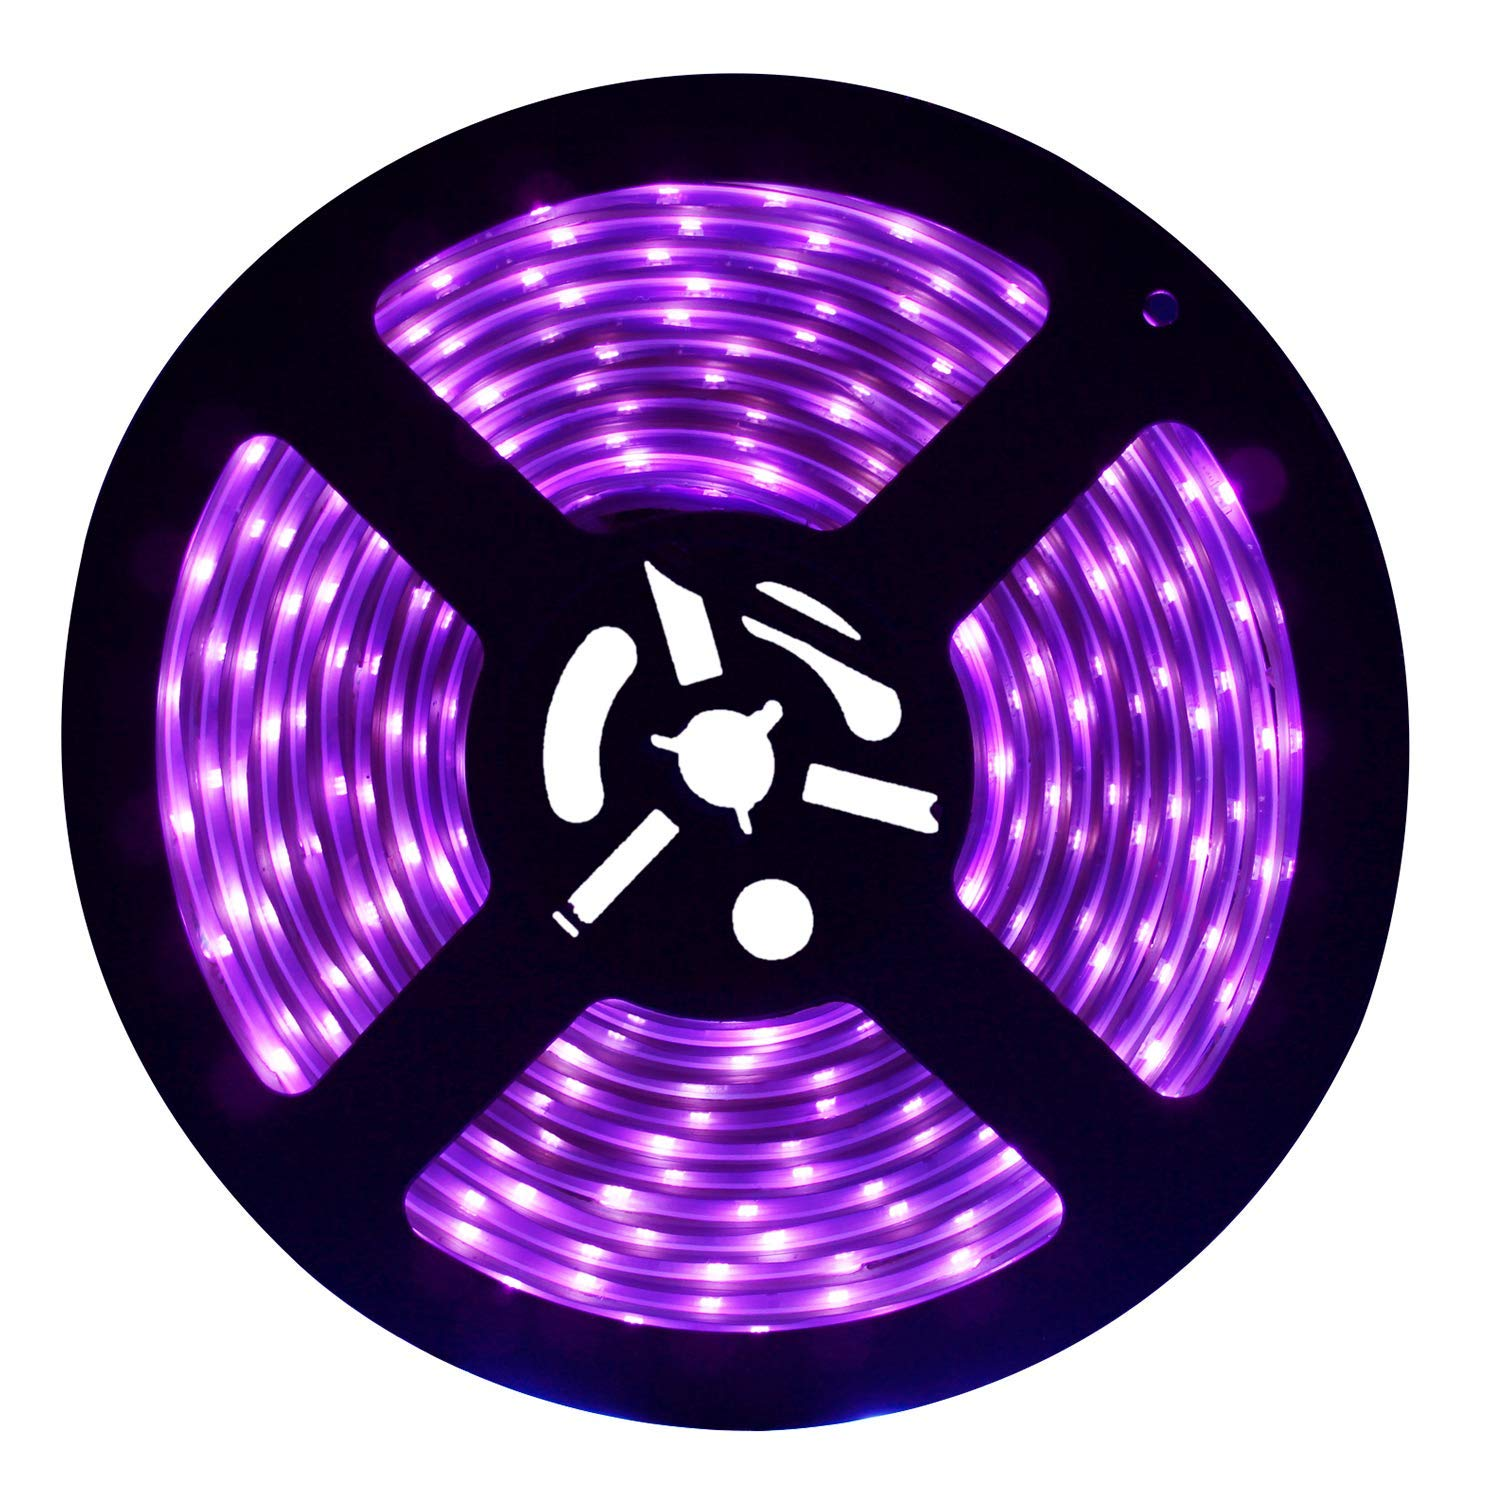 UV LED Black Light Strip, Exulight Flexible Ultraviolet 395-405nm 2835 SMD String Lights, 16.4Ft/5M 300LEDs Waterproof IP67 60 Watts Purple Tape Lamp with DC12V 3A Power Supply